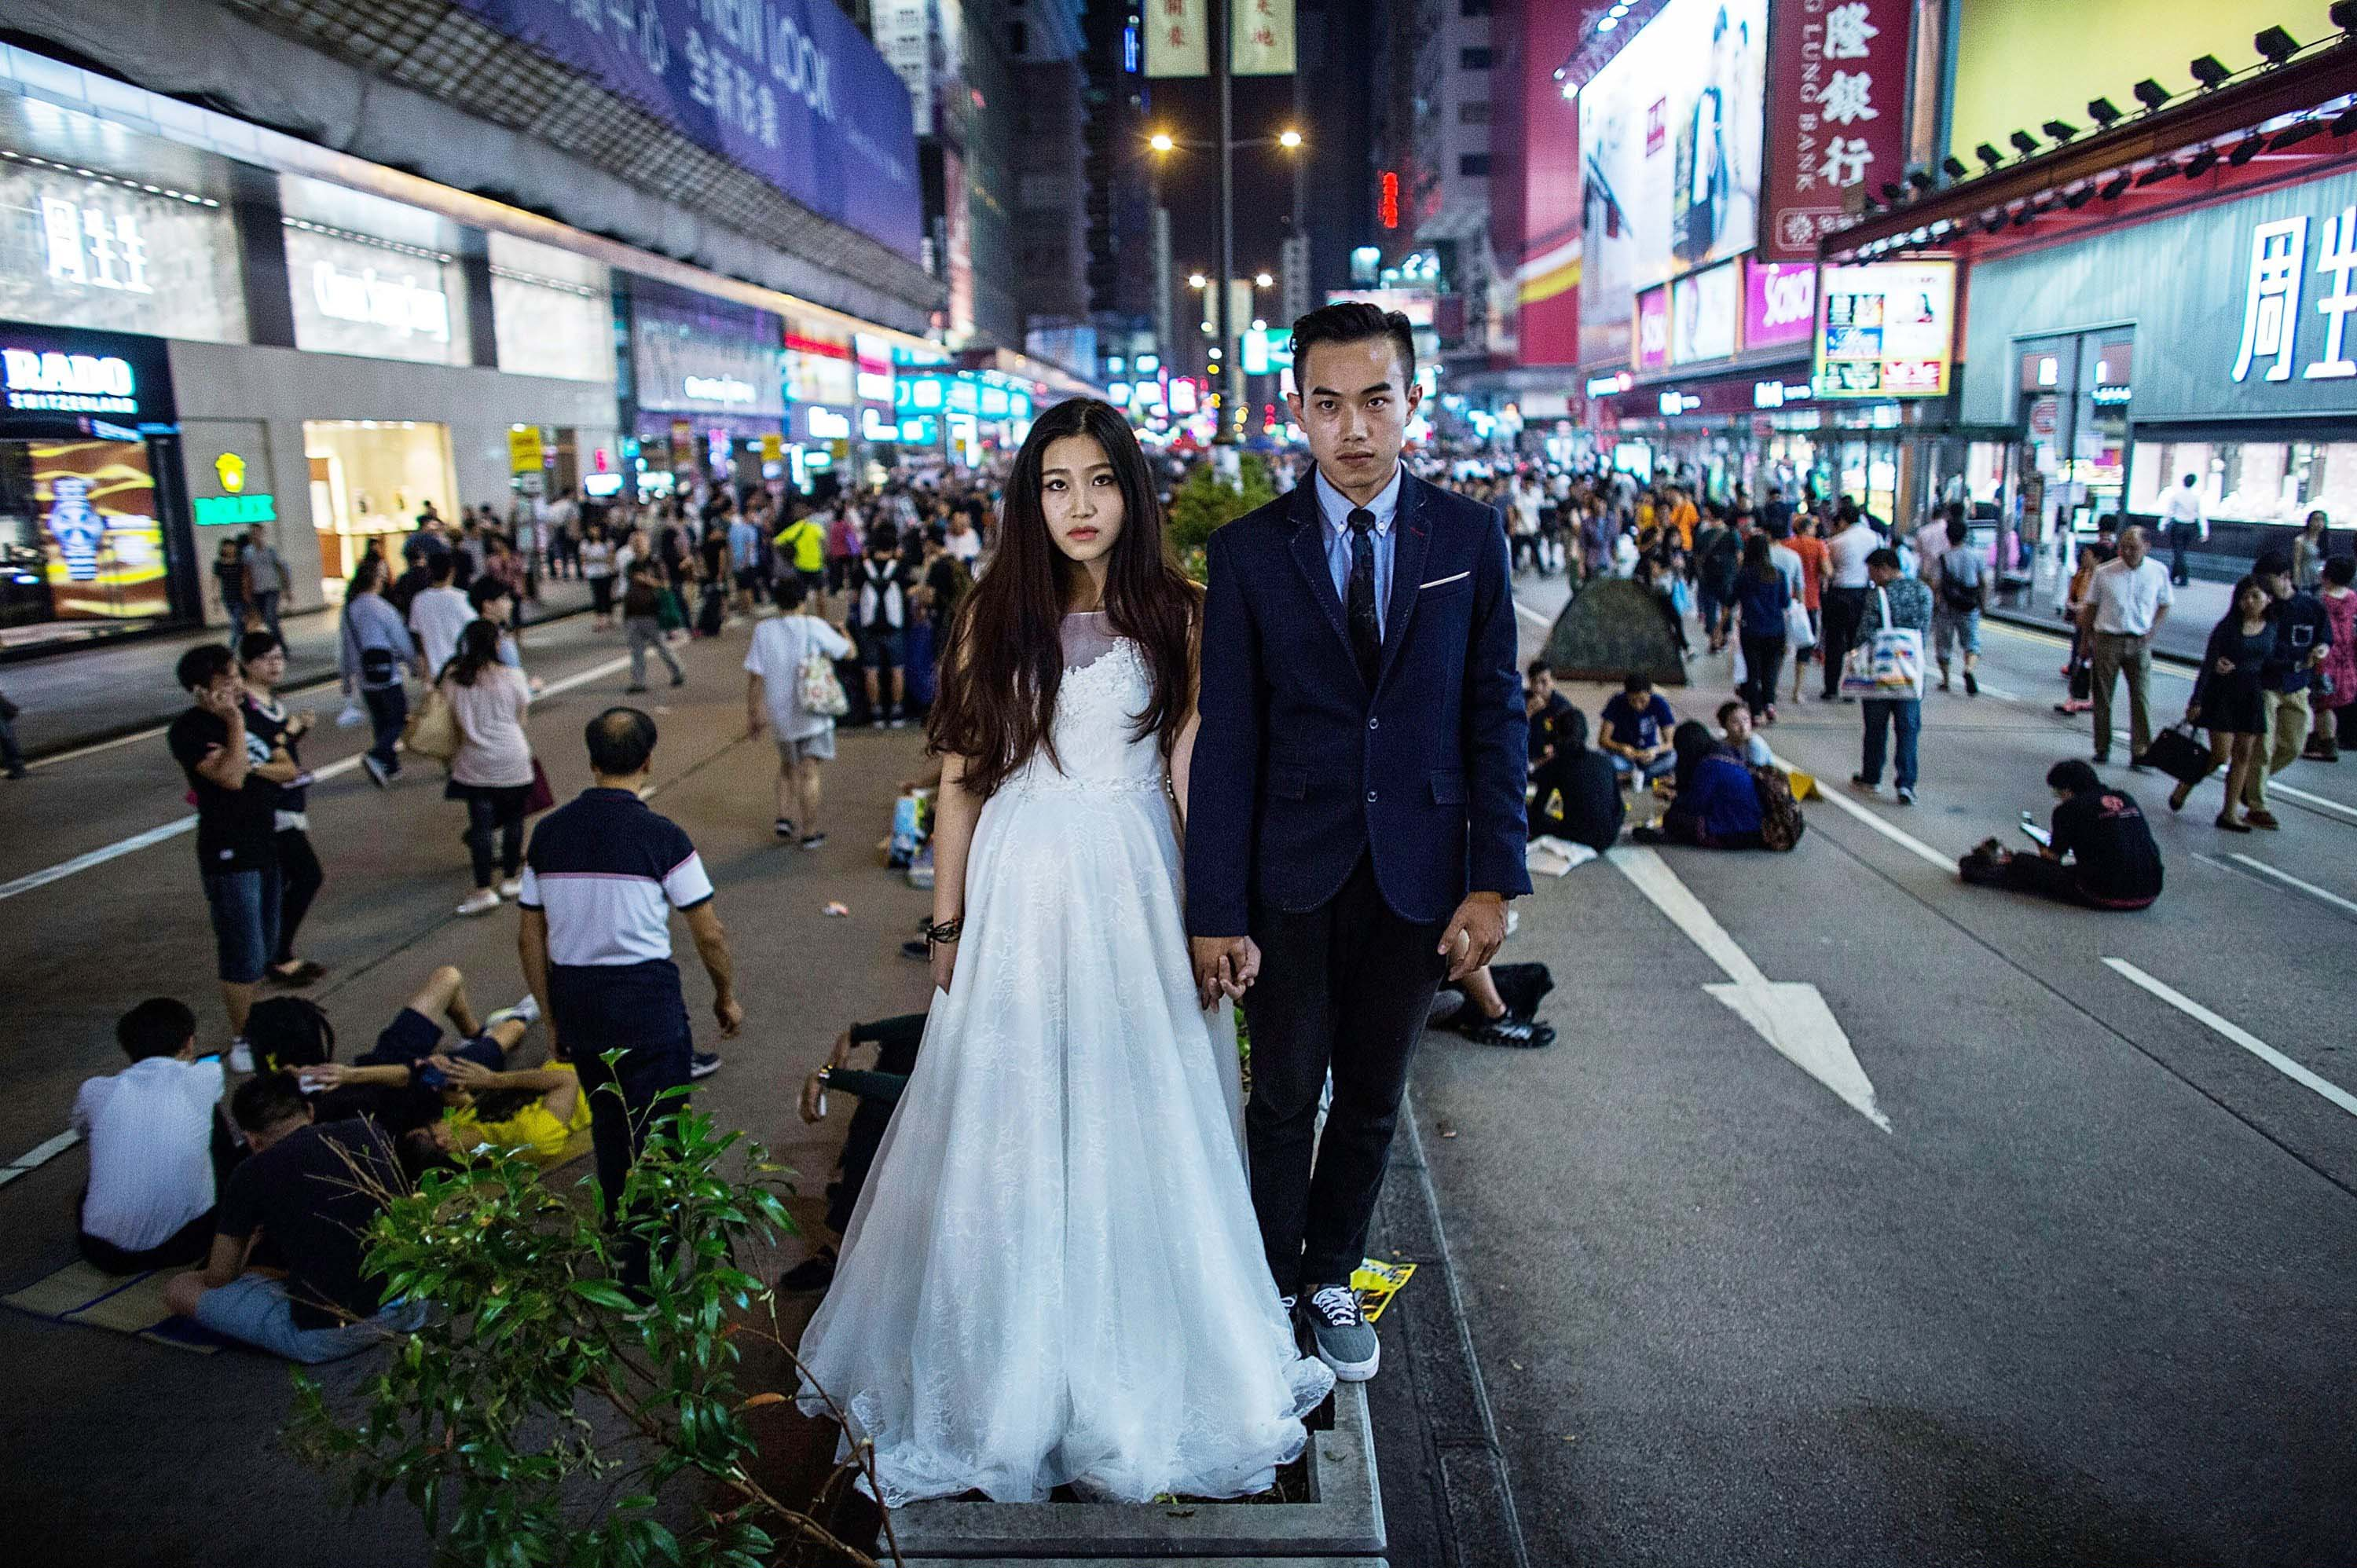 A Chinese couple takes pre-wedding photos at the occupation zone at Mongkok on Oct. 21, 2014 in Hong Kong.